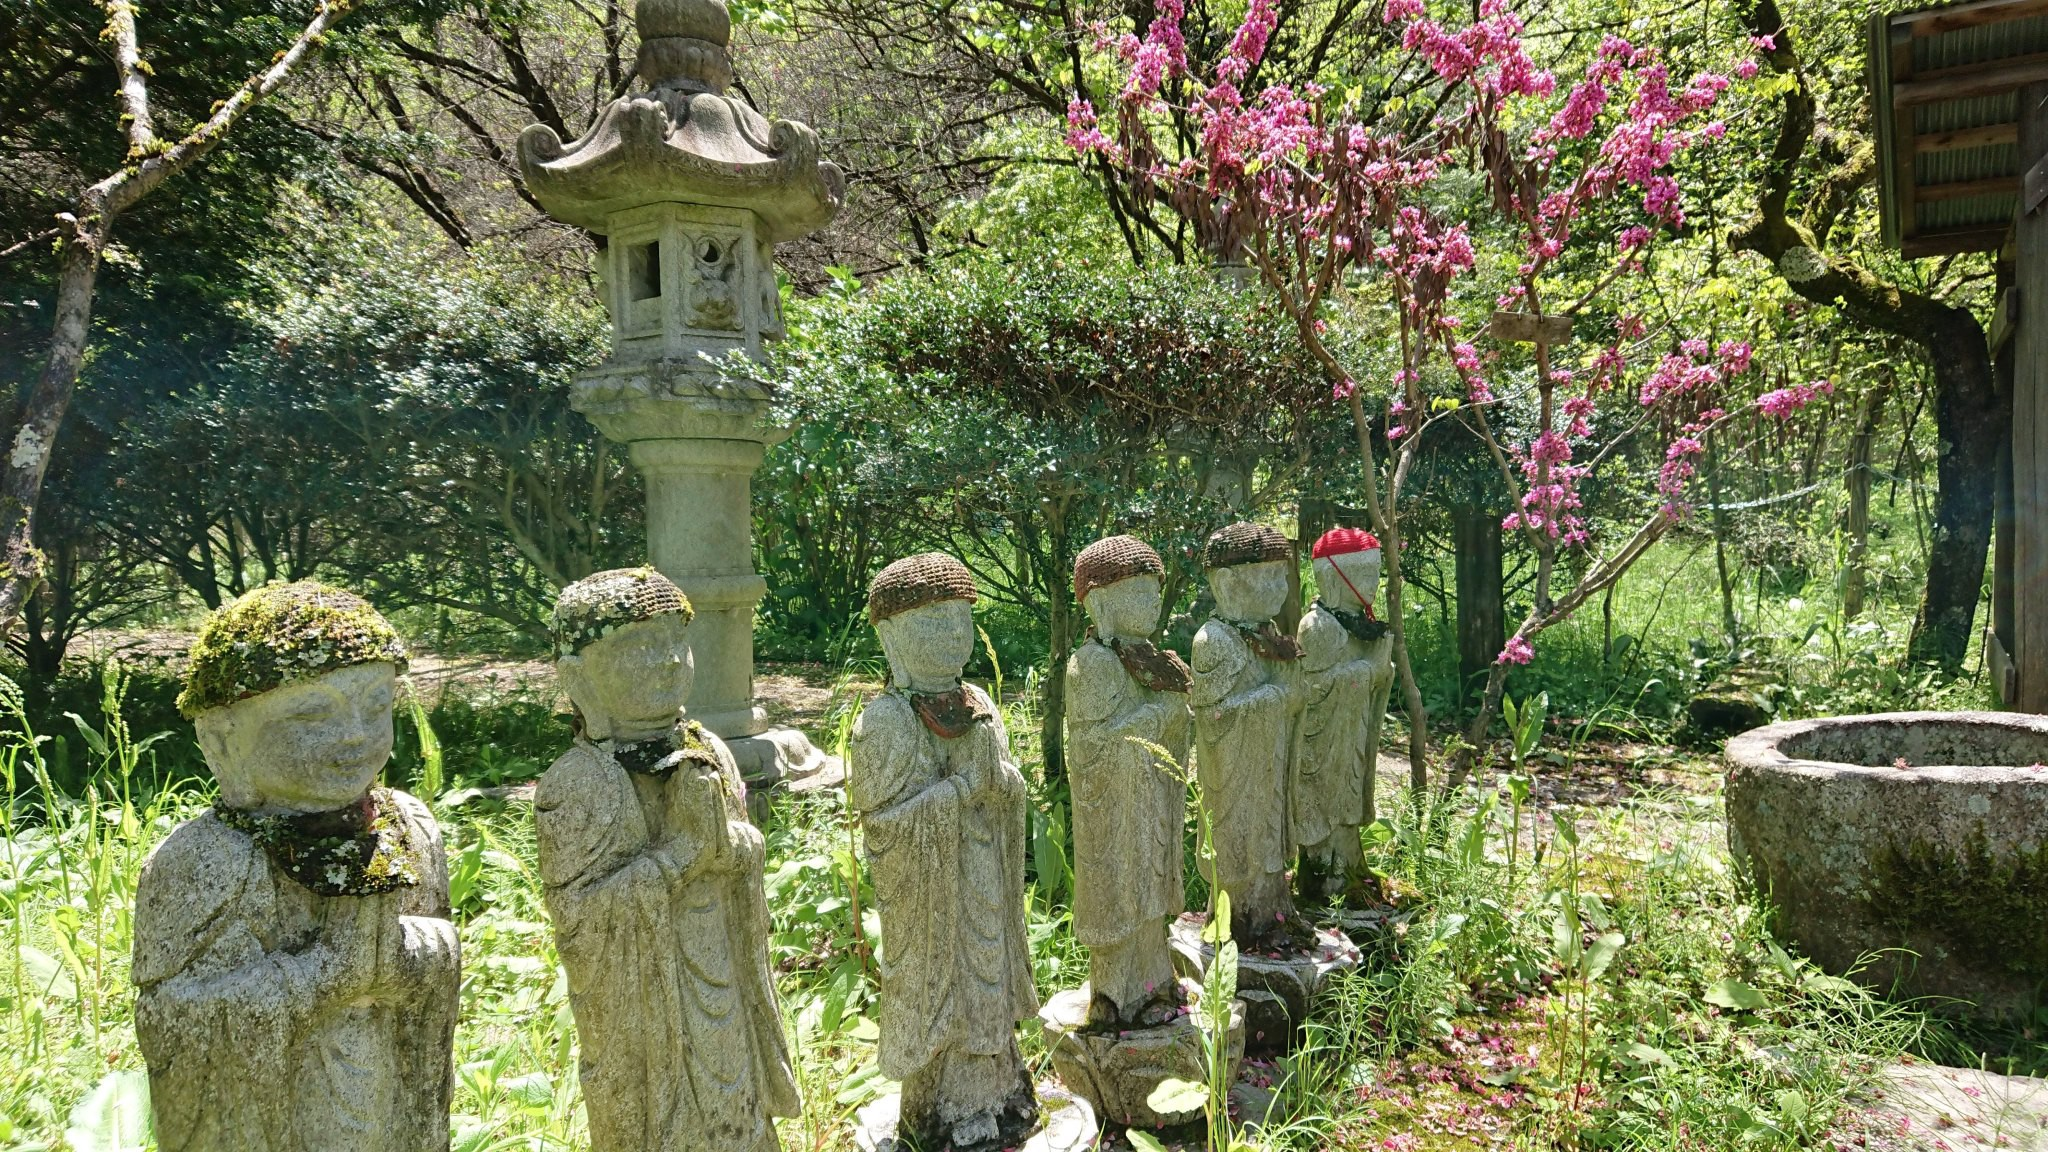 A row of stone statues at a shrine, wearing knitted hats